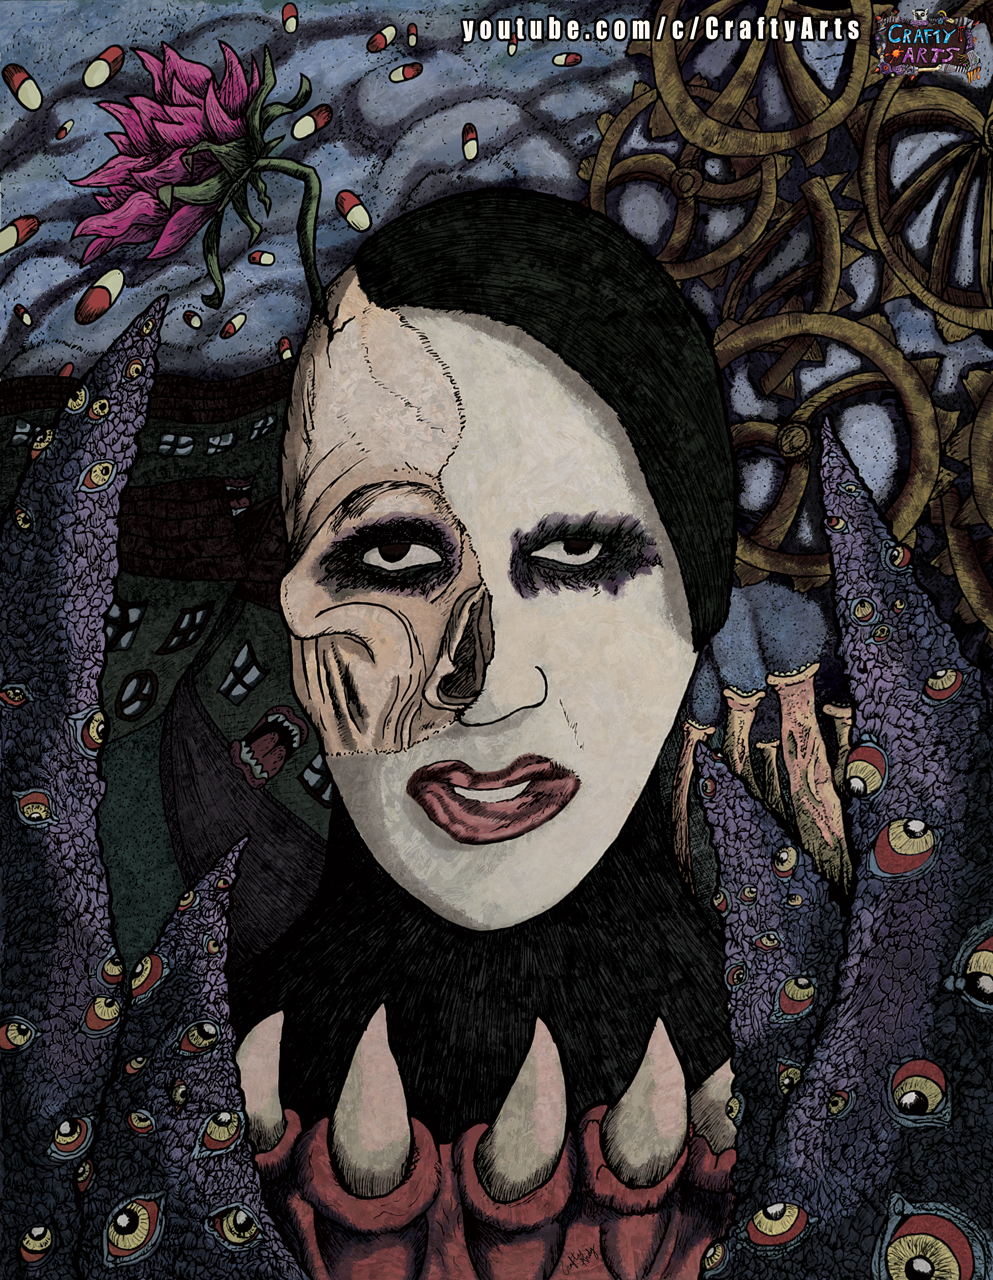 MArilyn Manson We ARe Chaos Tribute CraftyAndy